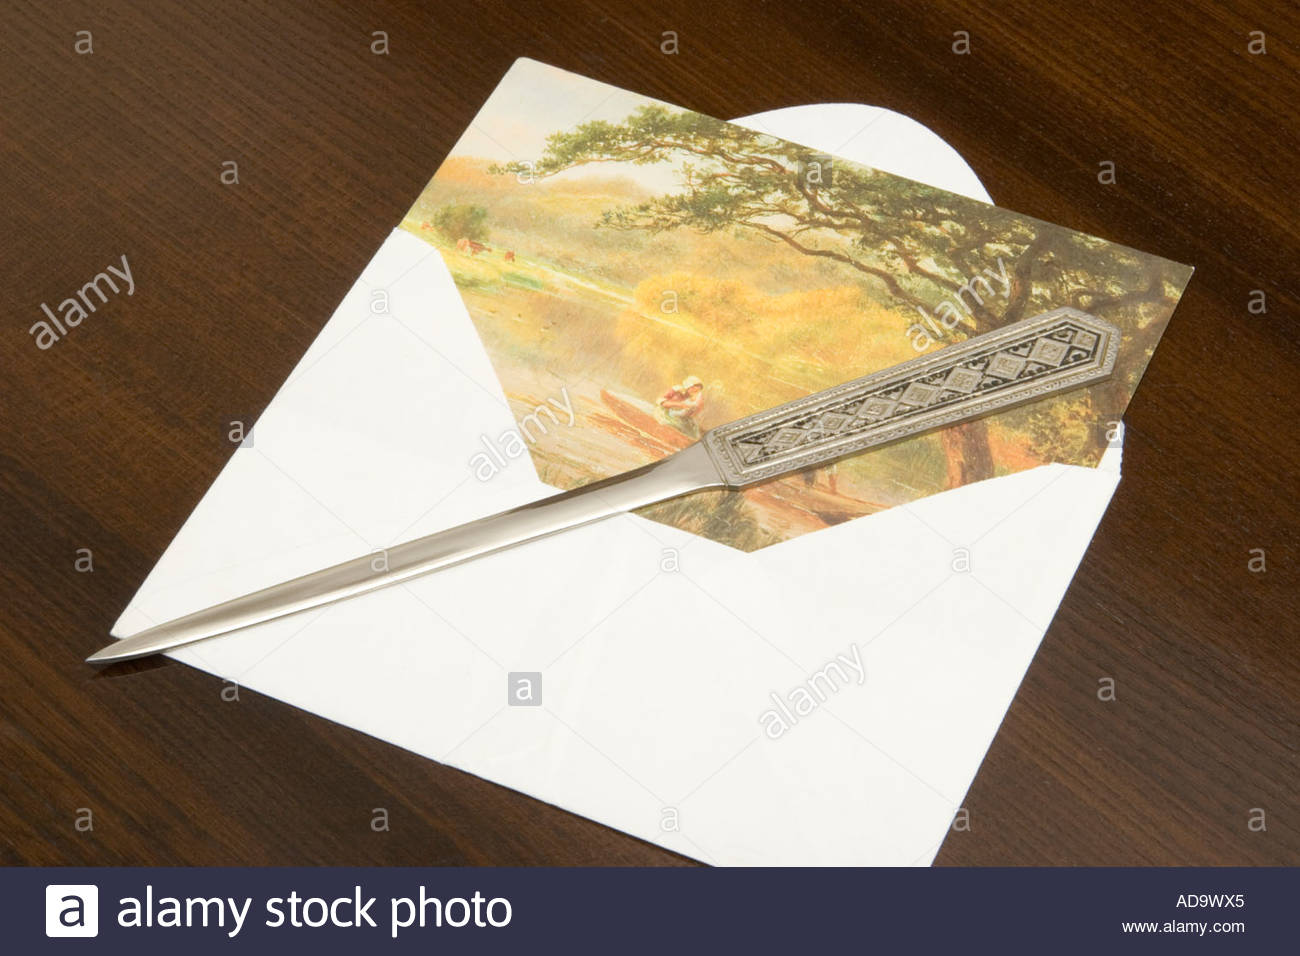 Card and paper knife. - Stock Image